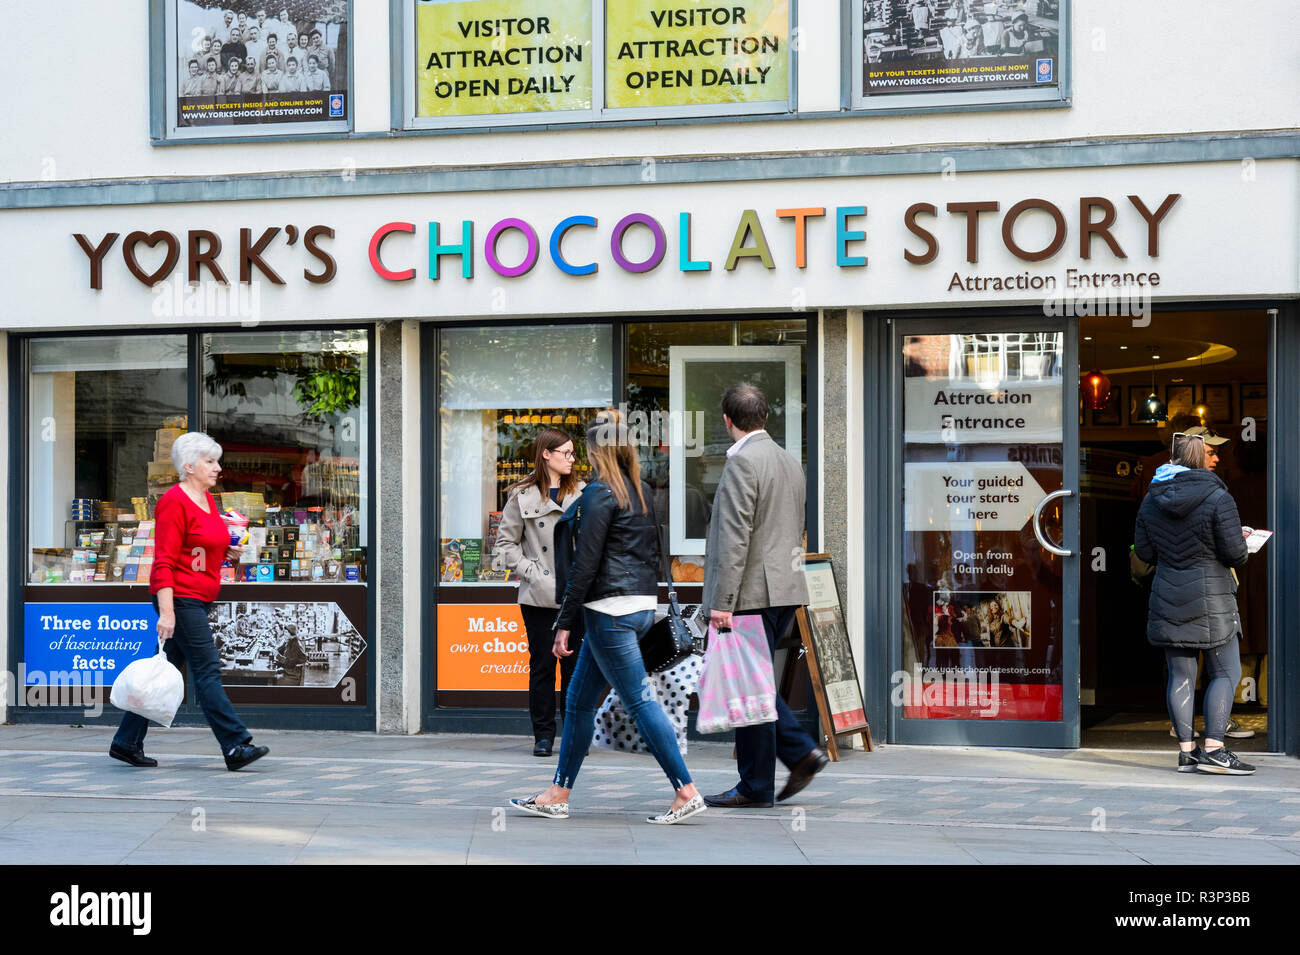 People walking past York's Chocolate Story (interactive museum attraction) as visitors go through the entrance - York, North Yorkshire, England, UK. Stock Photo